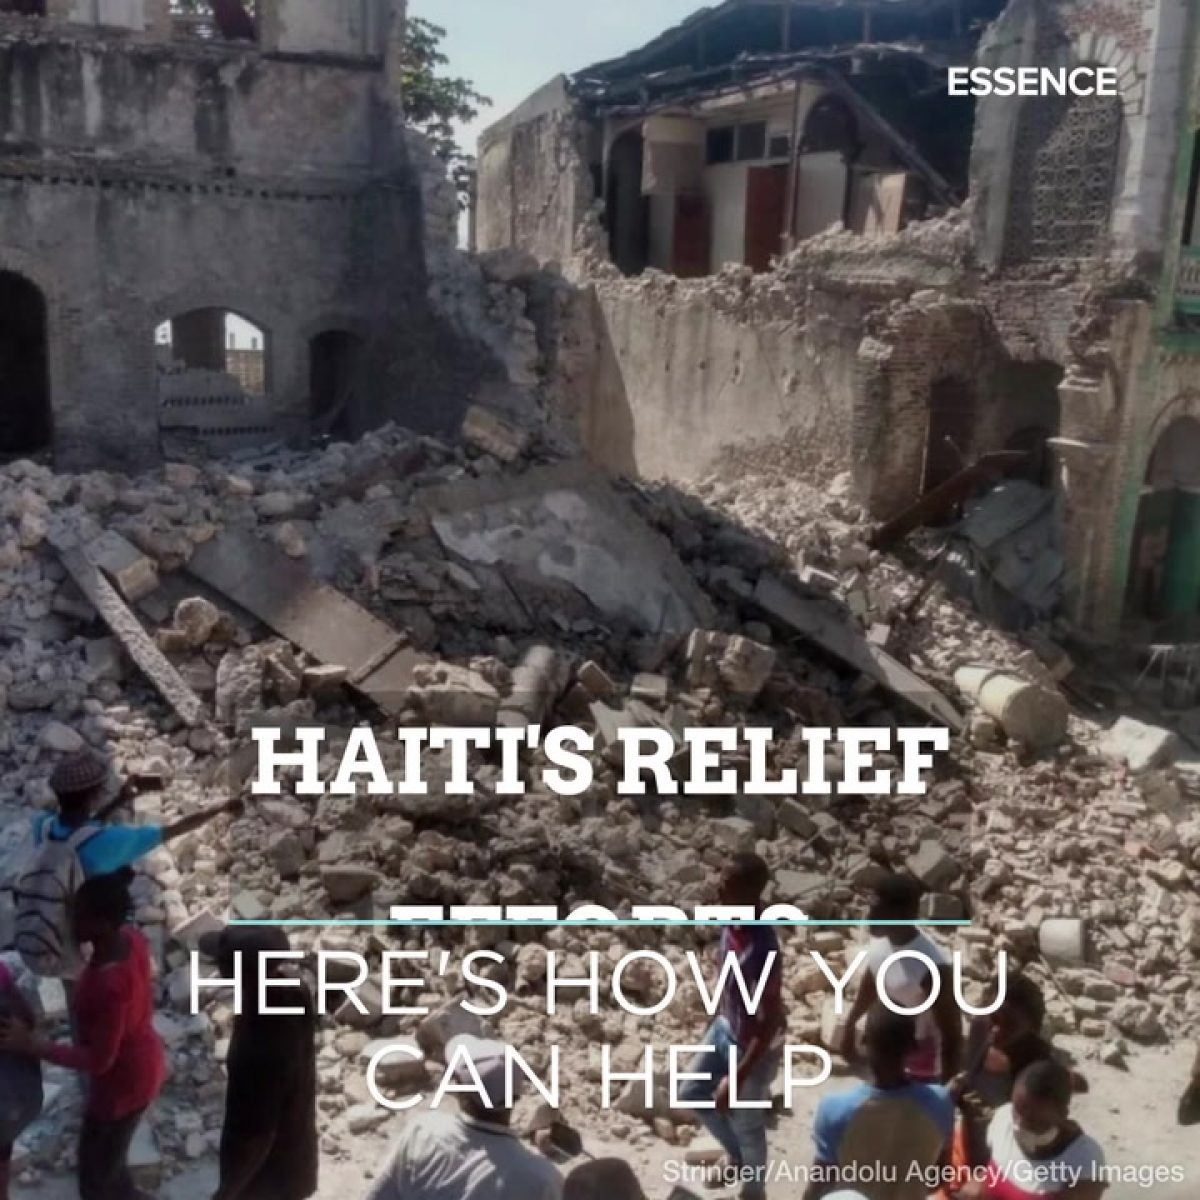 Here's How You Can Help Haiti's Relief Efforts